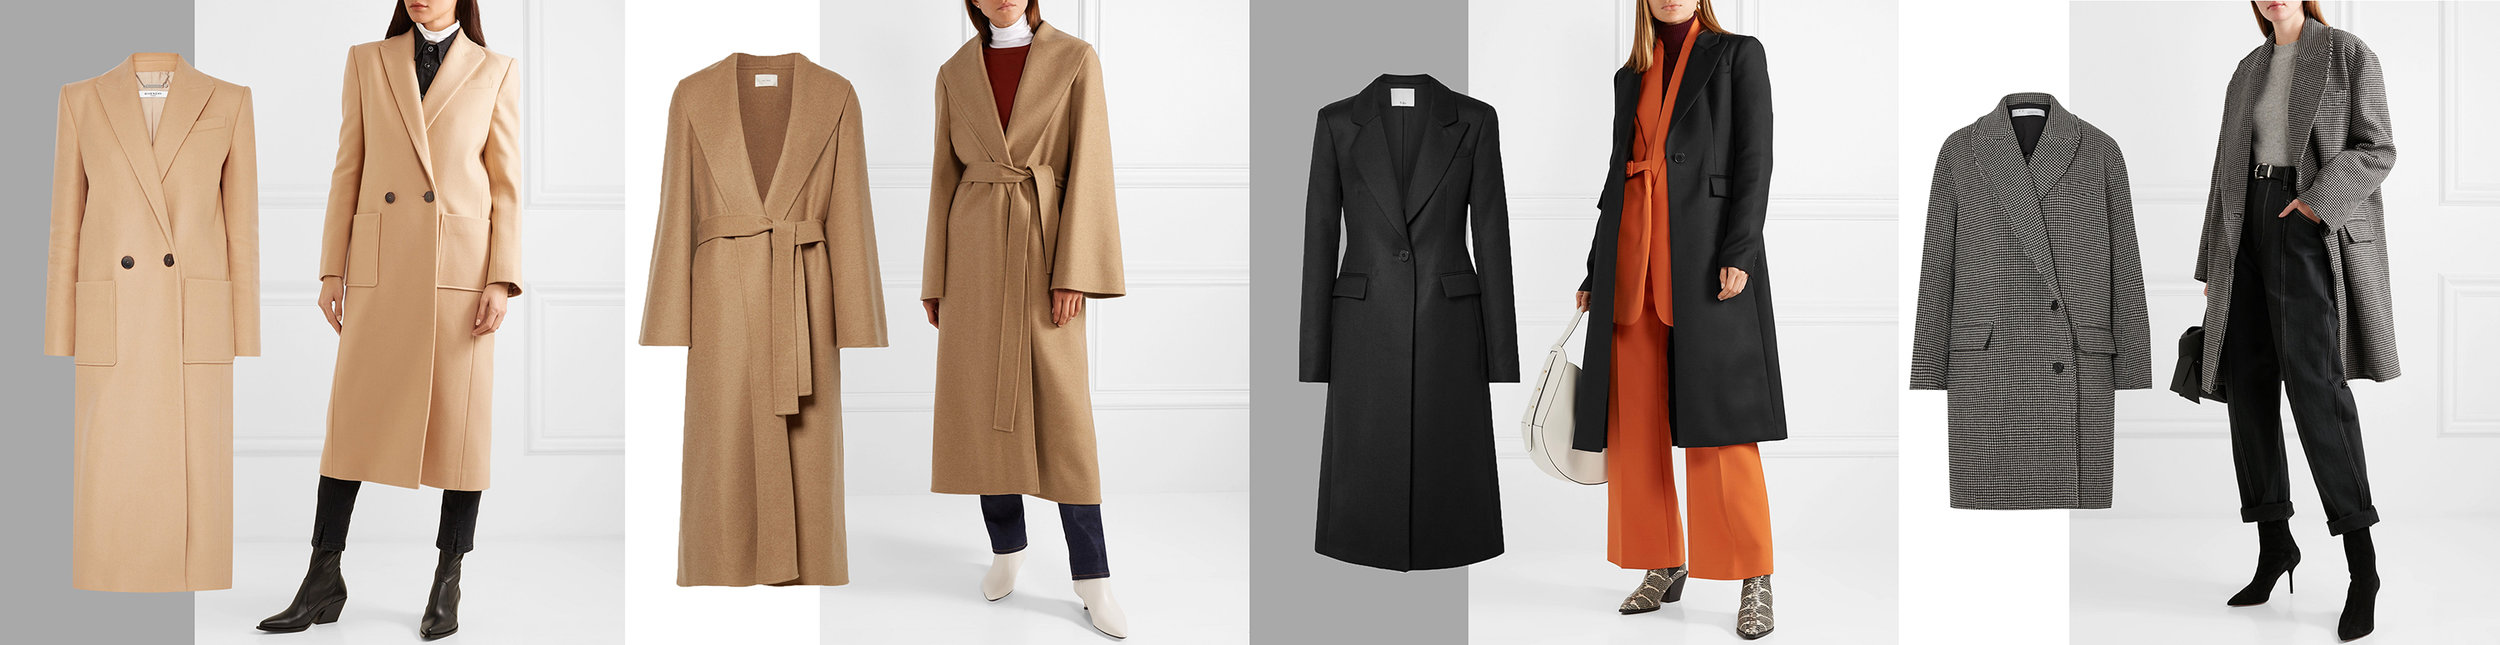 basic-wardrobe-coat-shape.jpg